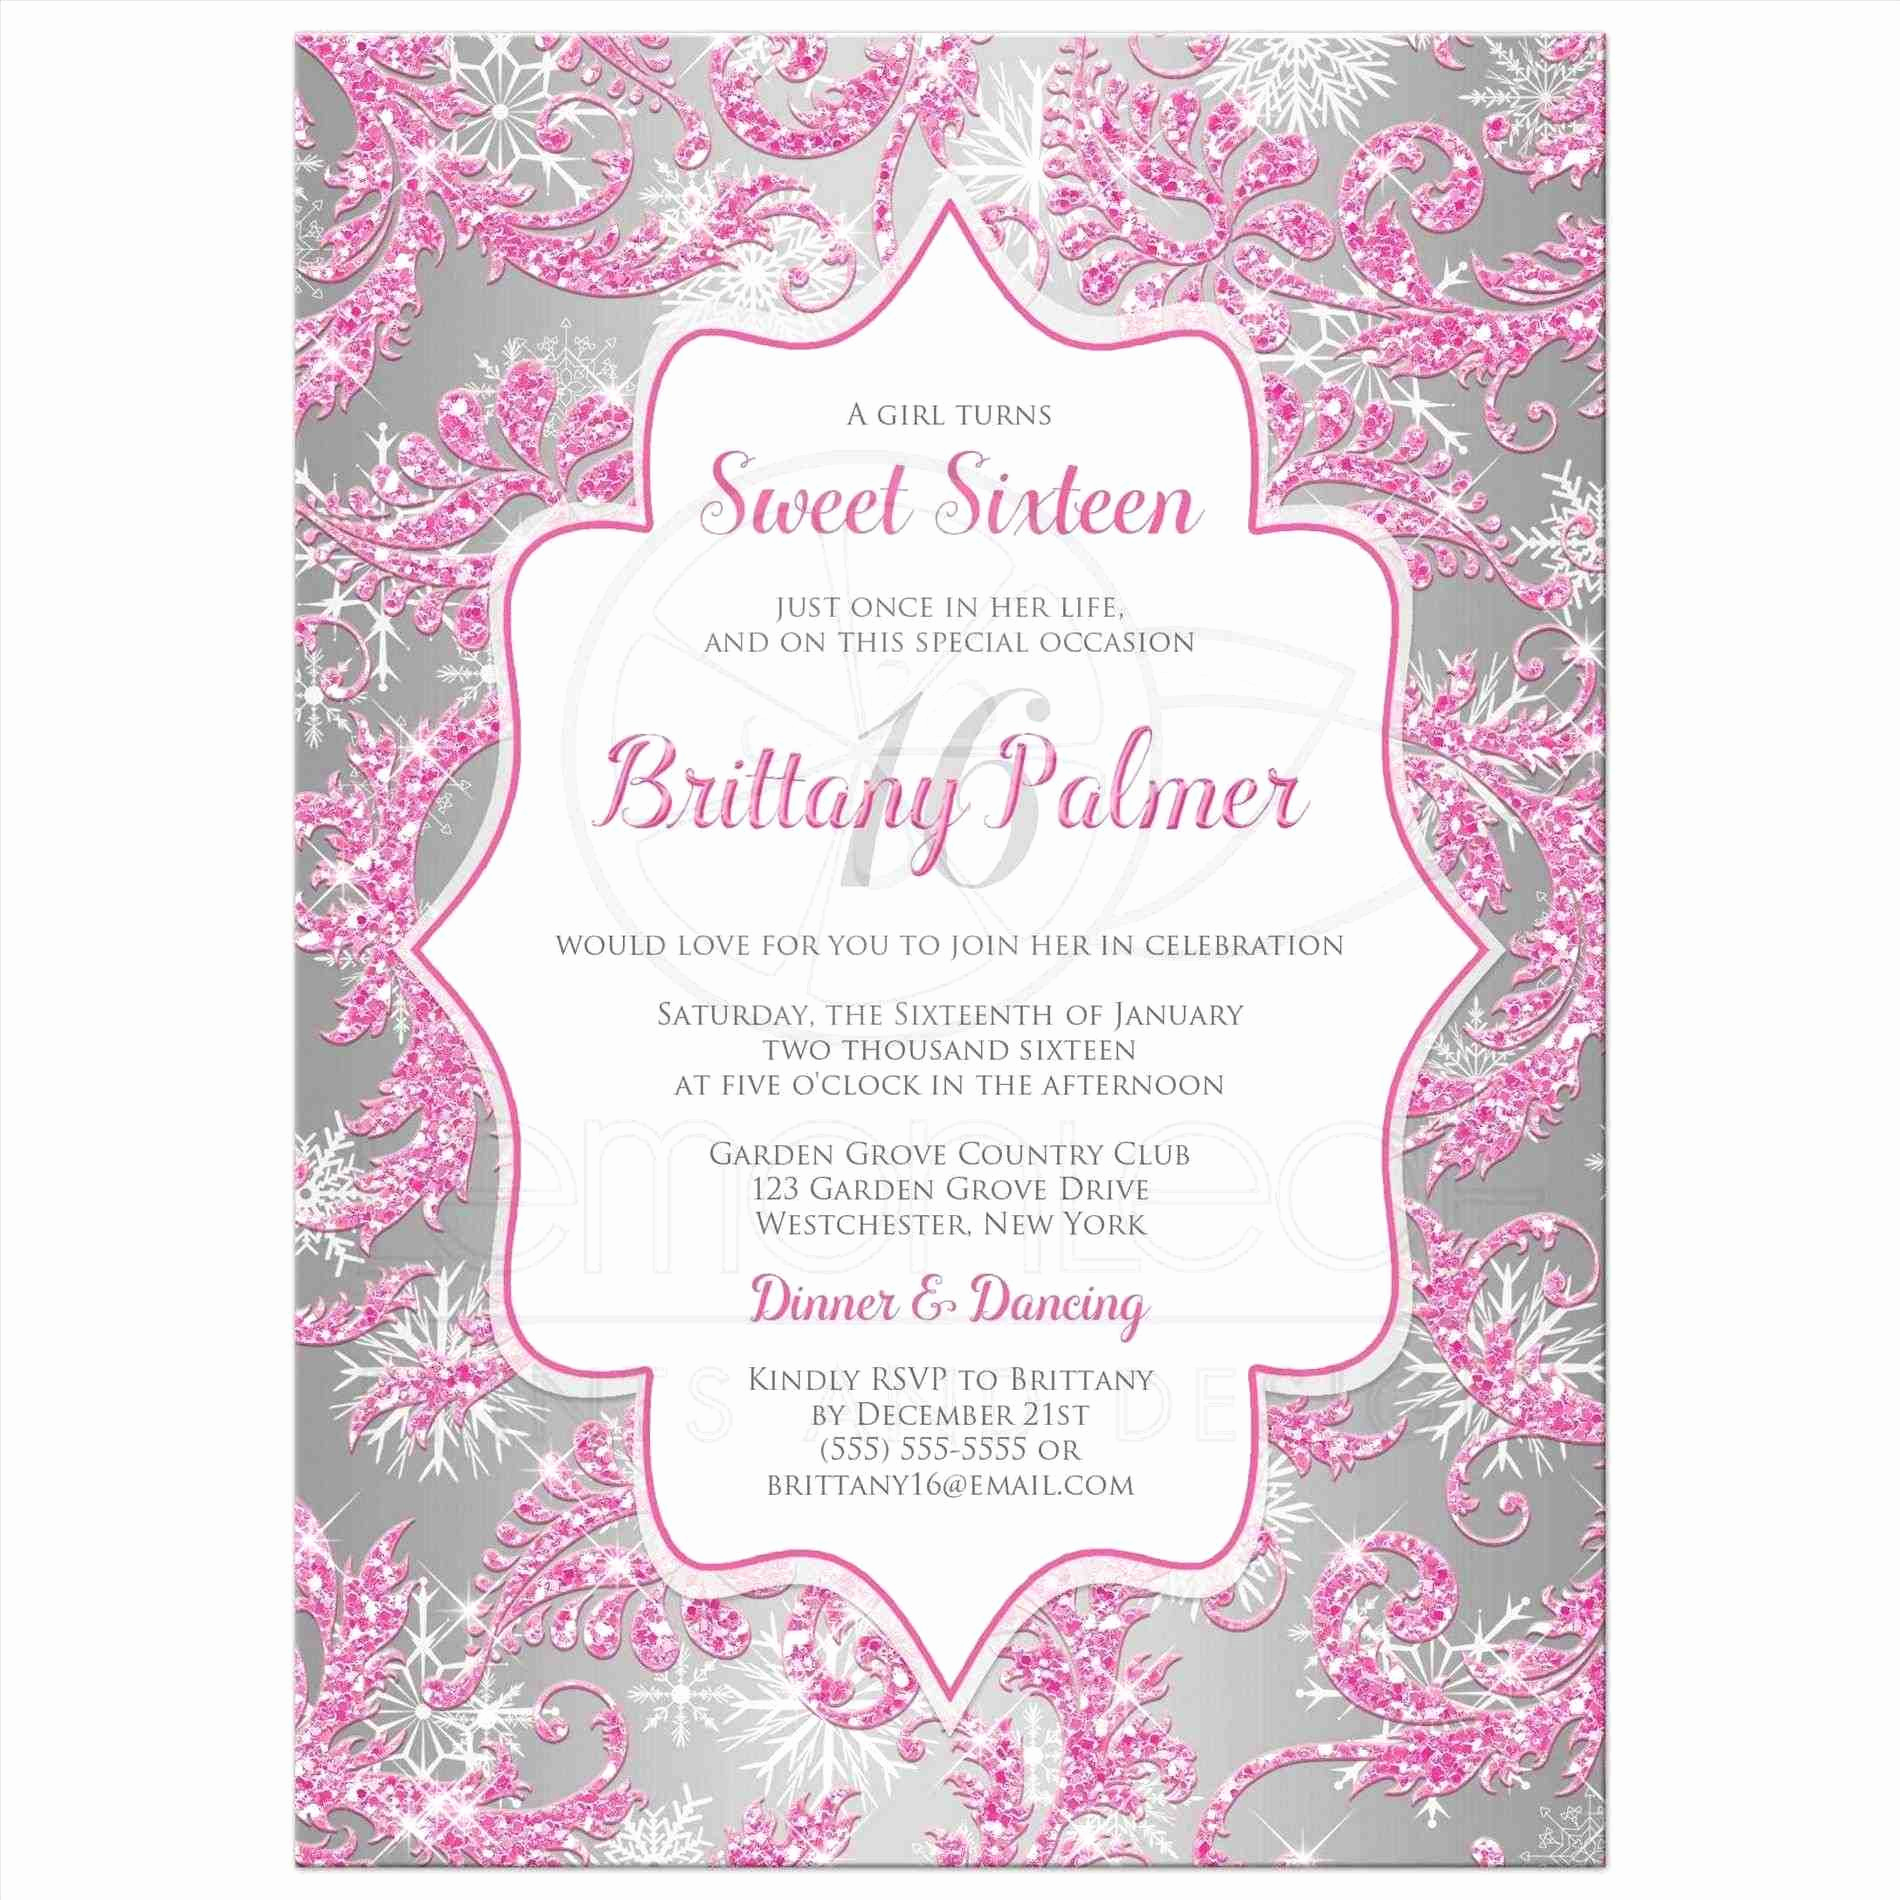 Sweet 16 Invitation Wording Best Of Extraordinary Boys 16th Birthday Invitation Wording for